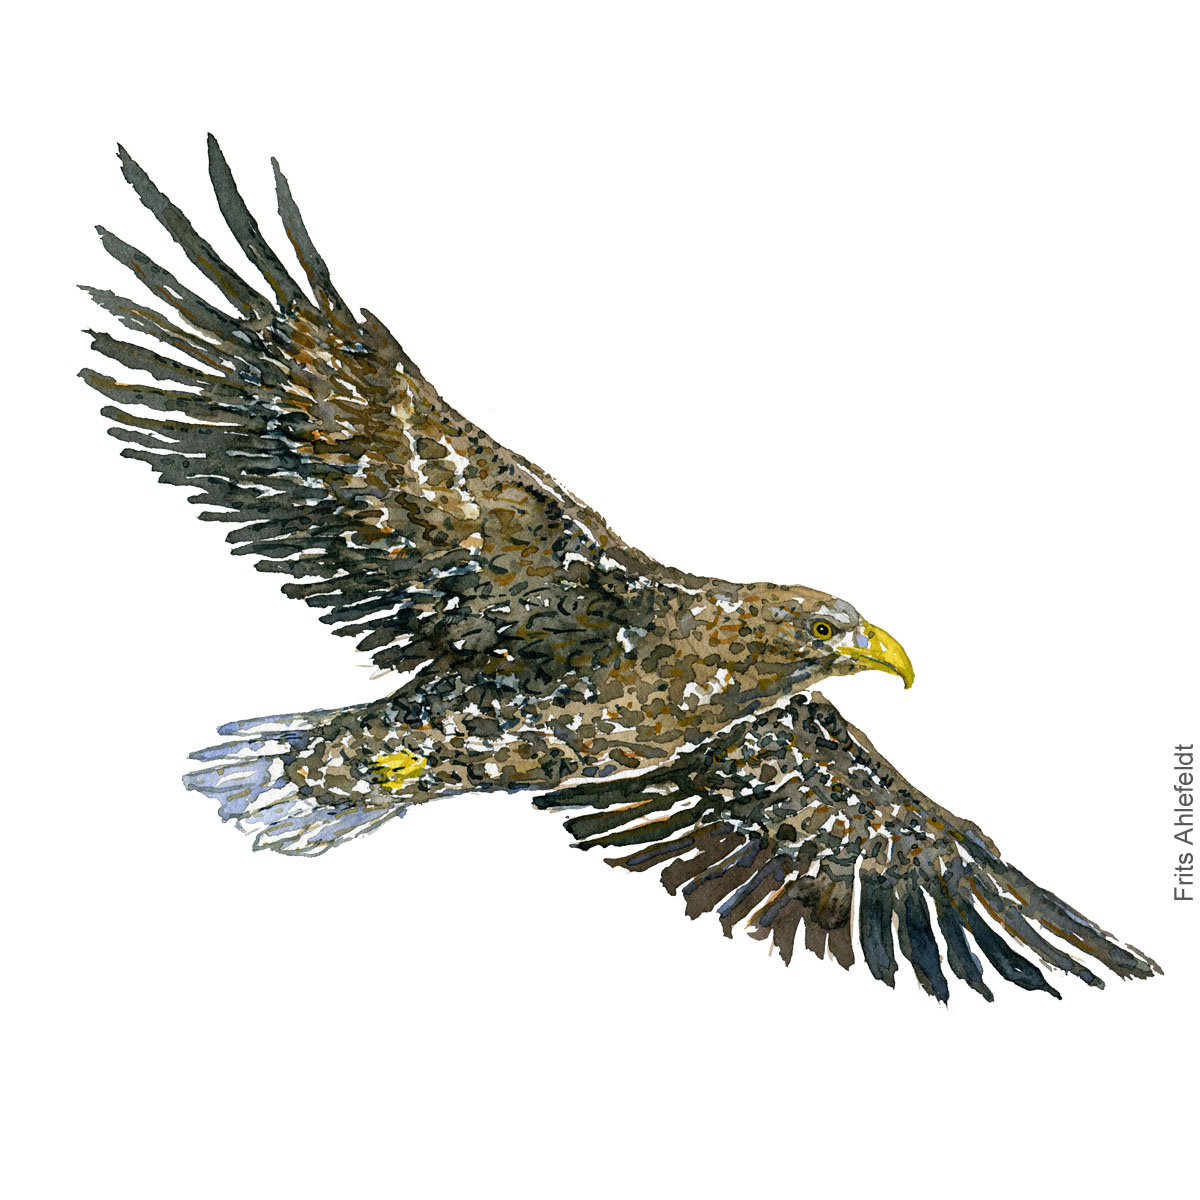 Flyvende havoern - Flying white tailed eagle - Bird painting in watercolor by Frits Ahlefeldt - Fugle akvarel